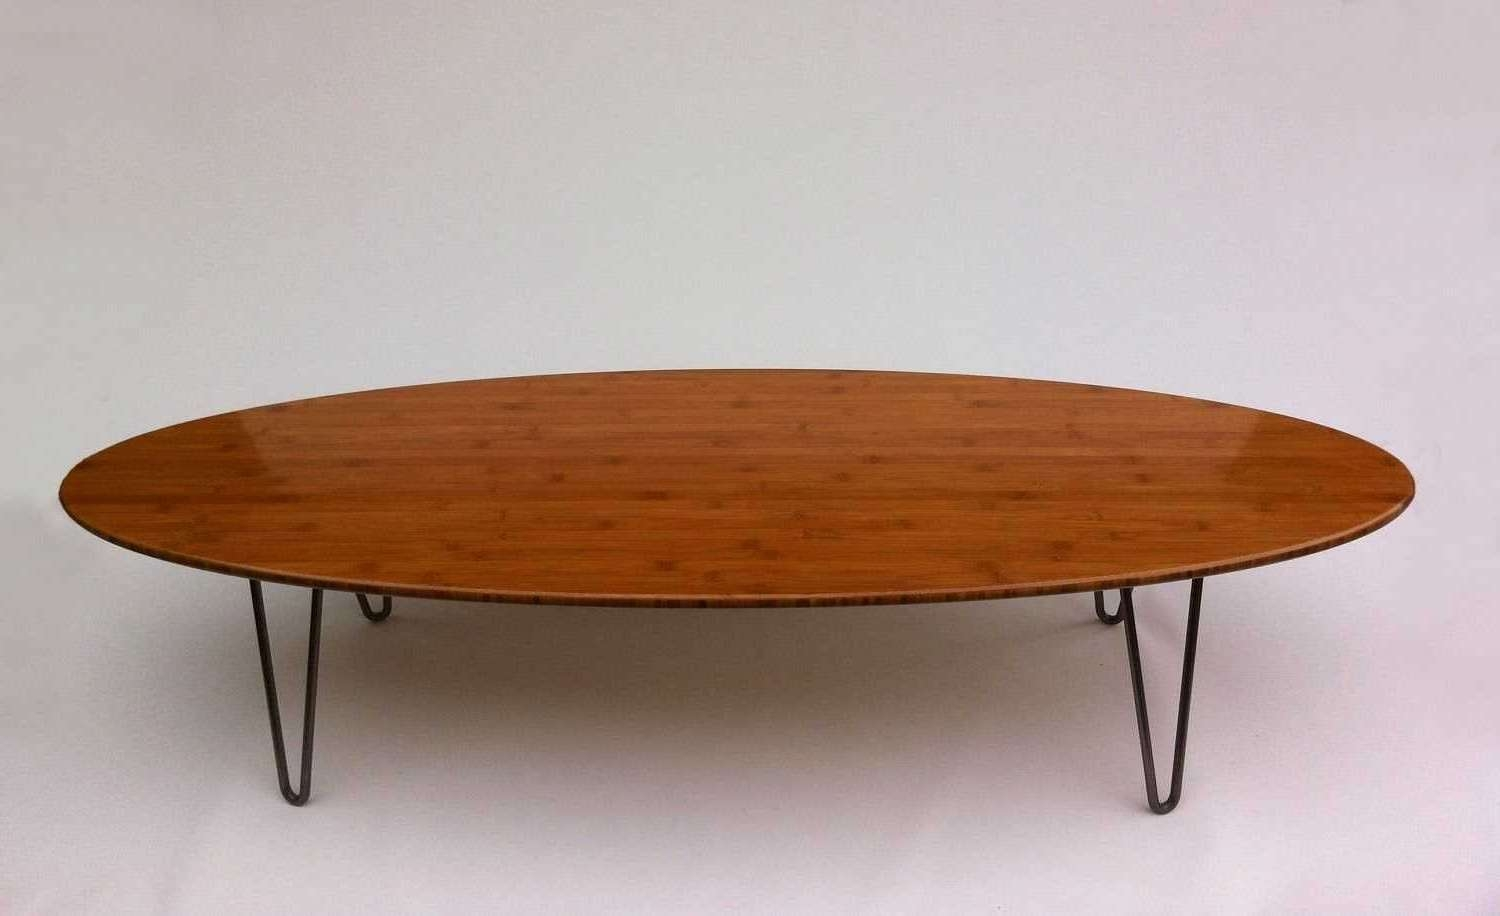 Oval Wood Coffee Table. Oval Coffee Table Classic Design Wood With Within Best And Newest Oval Wood Coffee Tables (Gallery 2 of 20)